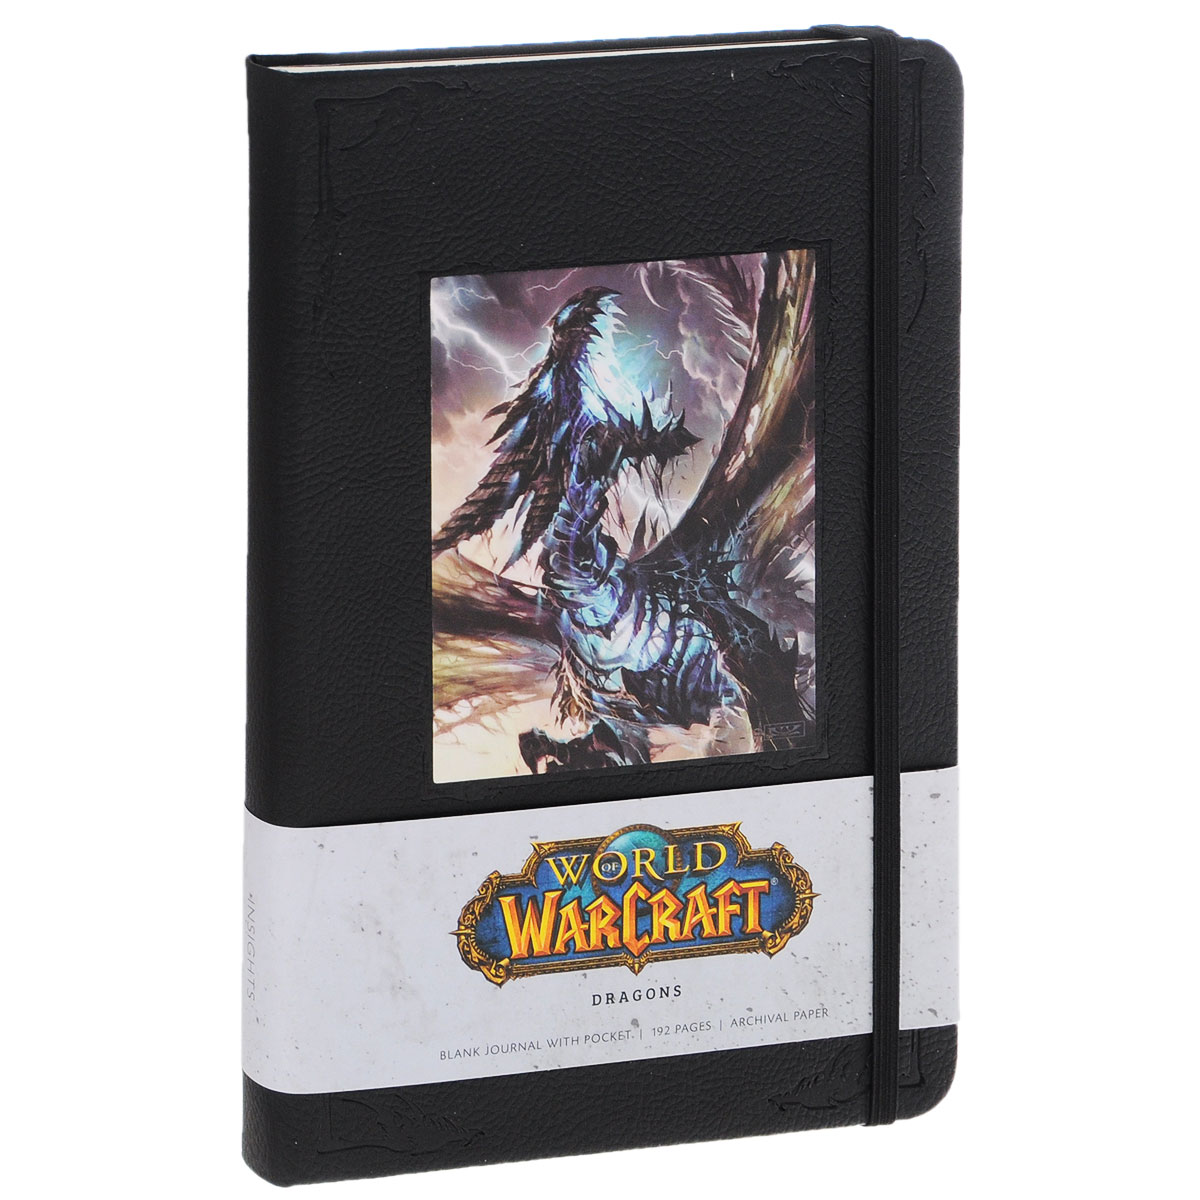 World of Warcraft Dragons Blank Journal this globalizing world